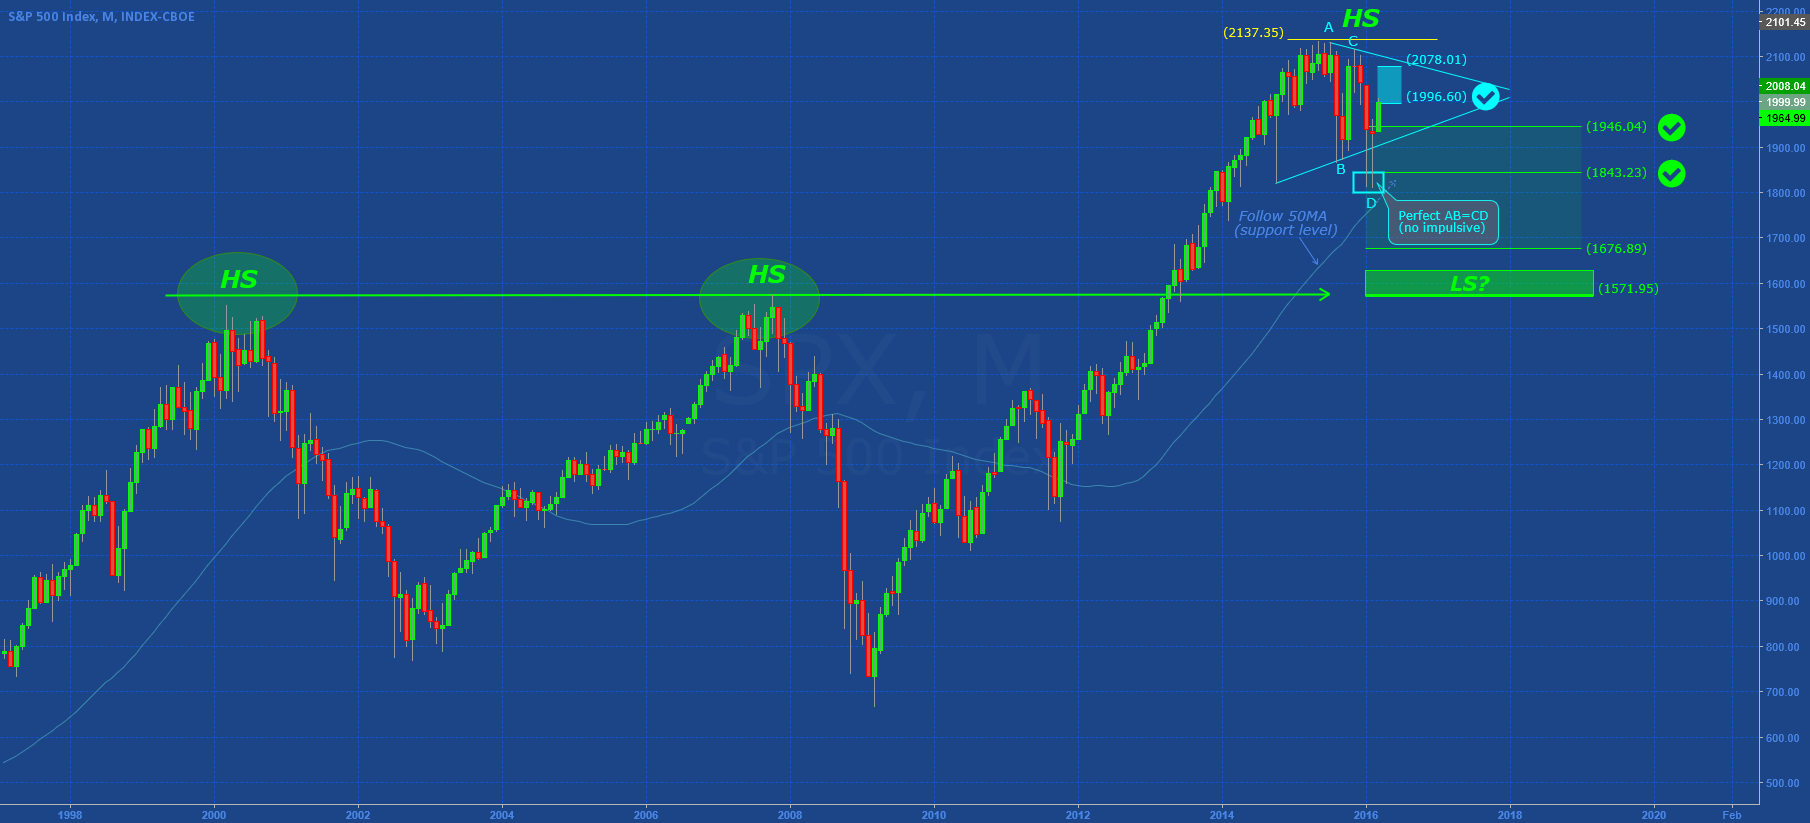 SP500: Technical Market in 2016